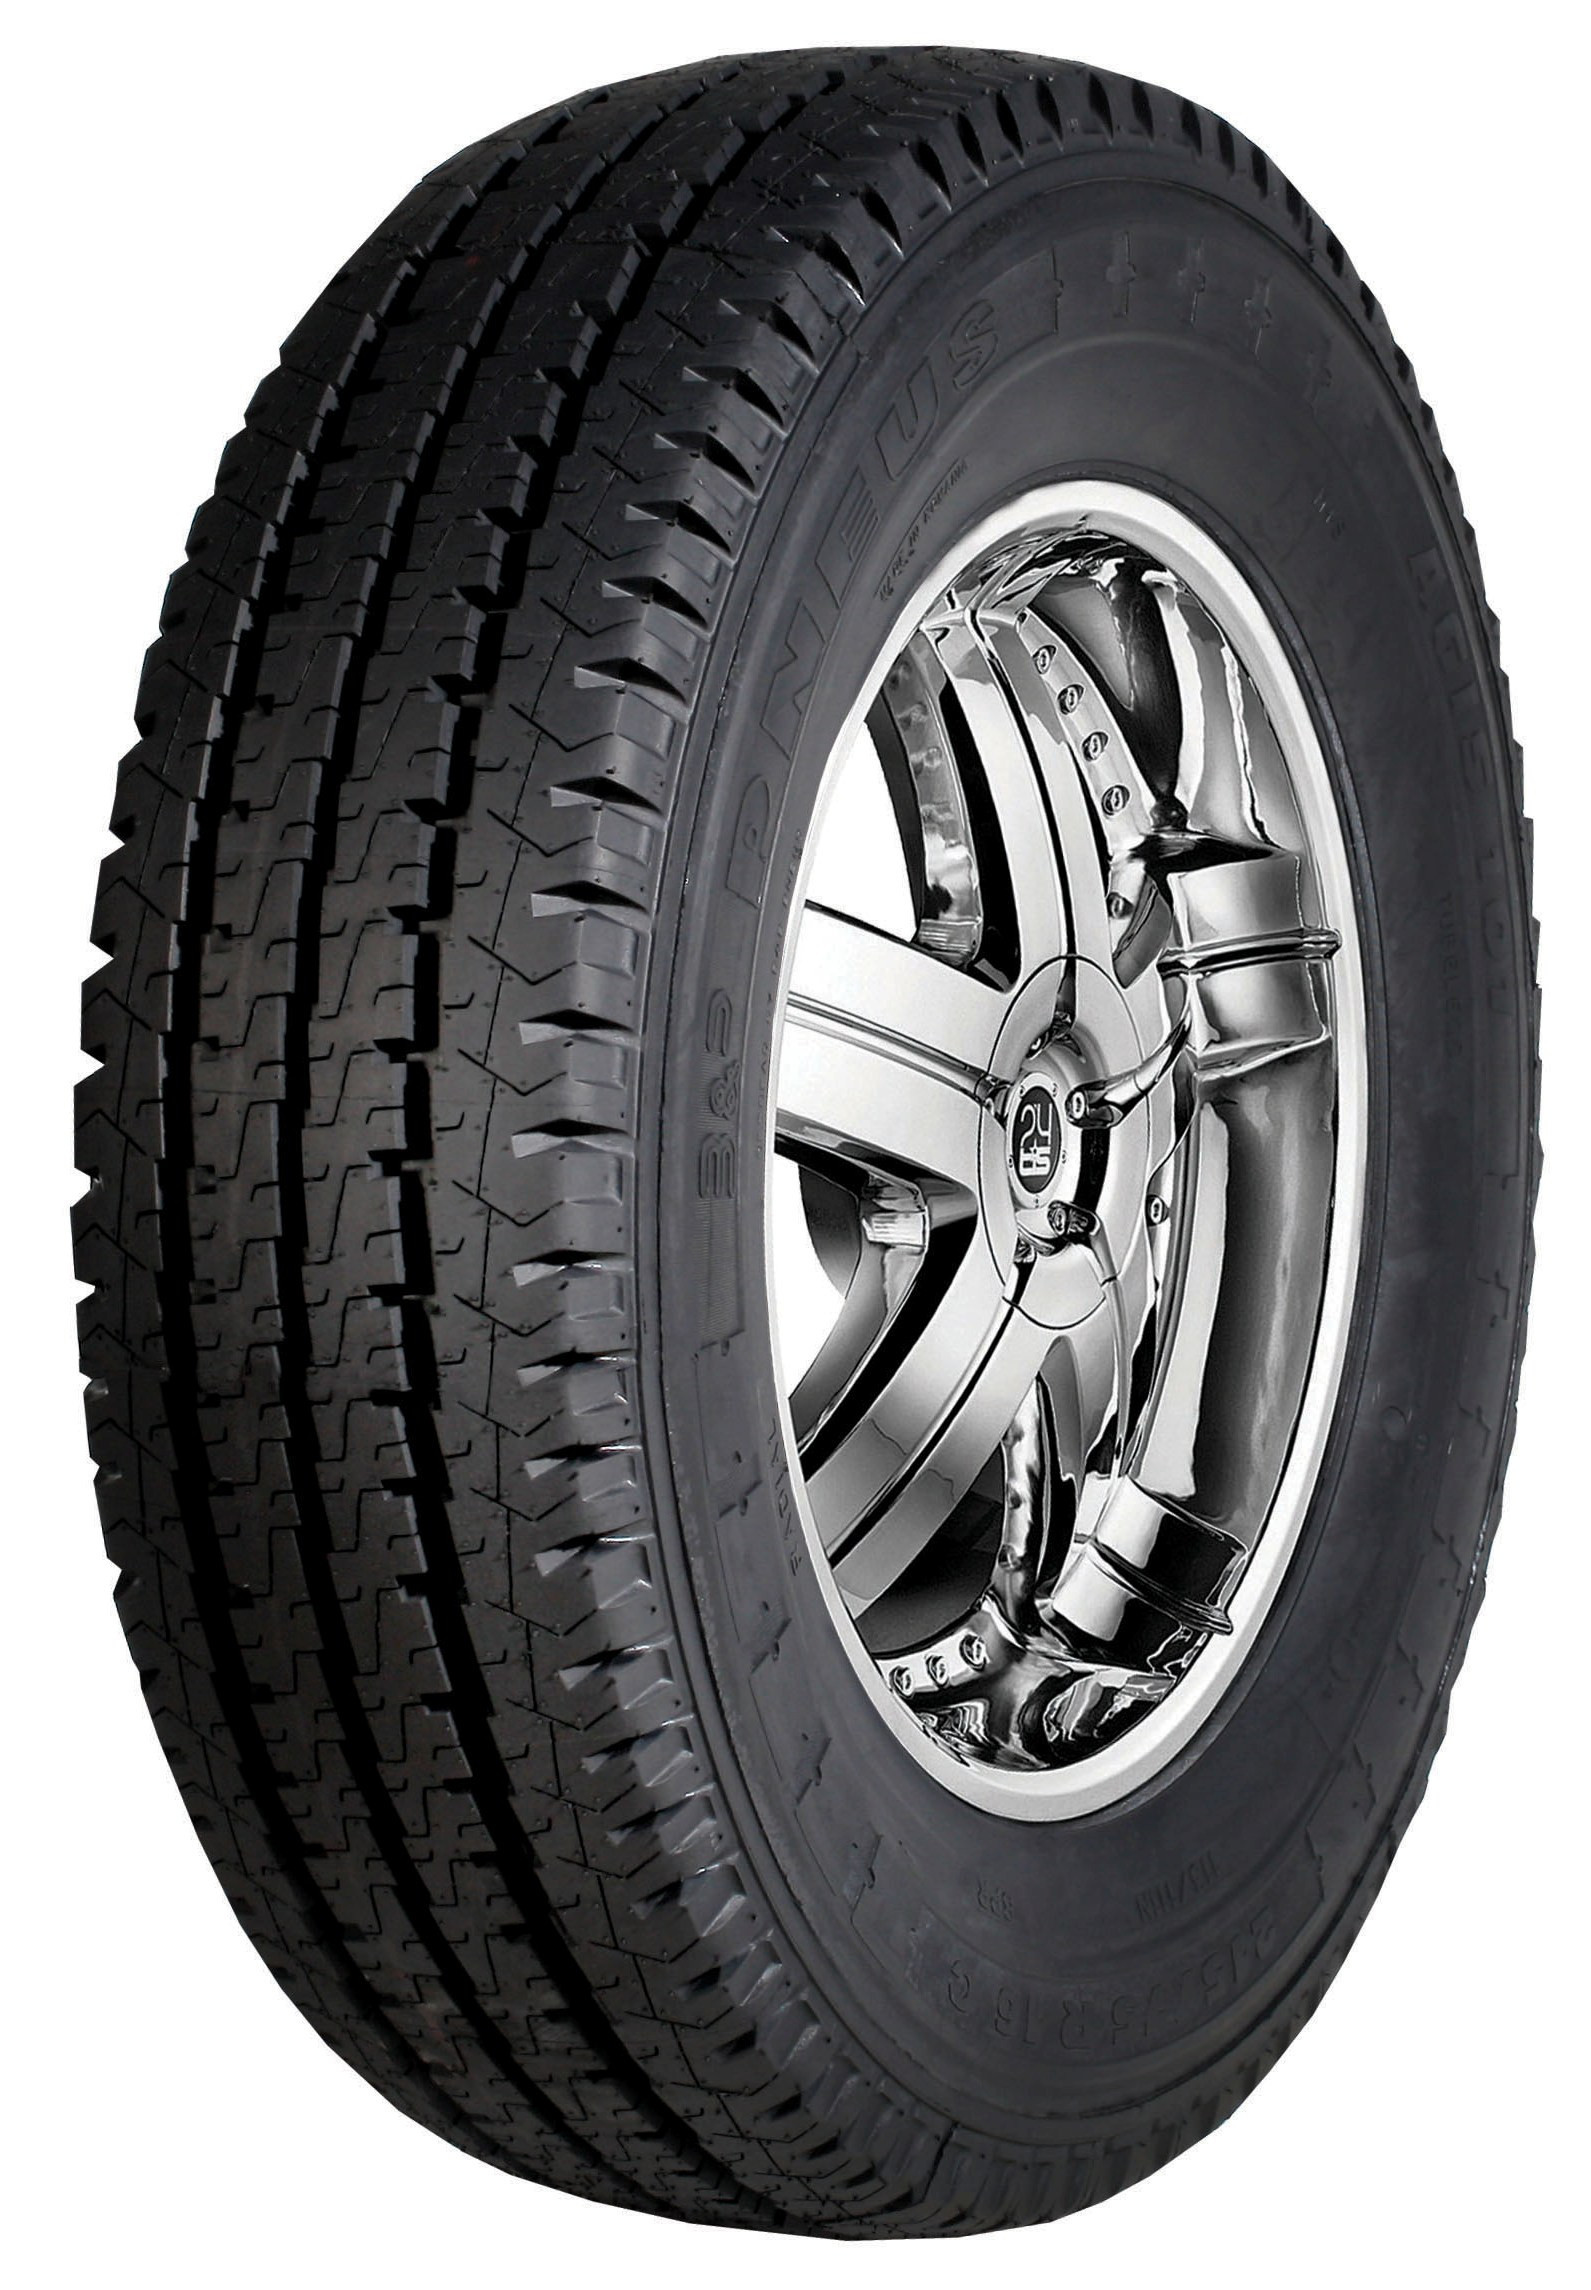 Anvelopa All Season 215/75R16 113/111N Pneus Agis 101 Reconstruite